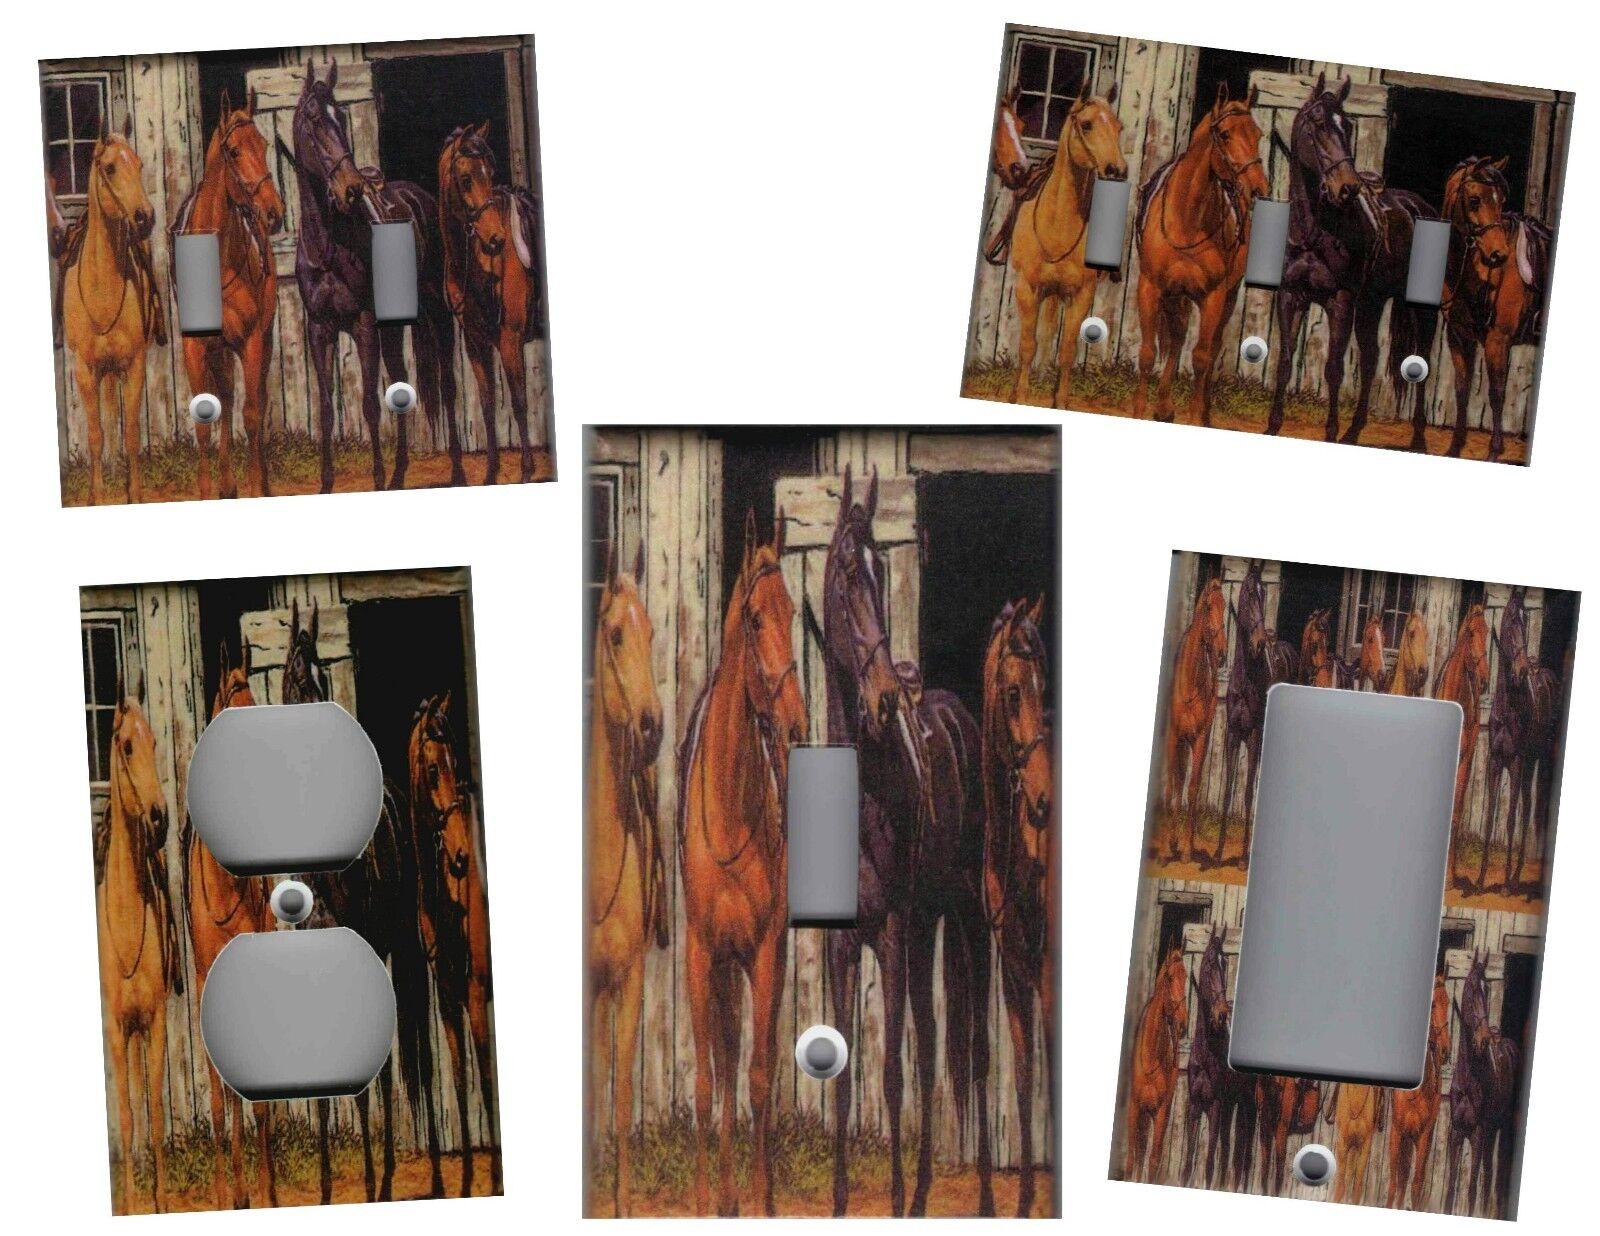 HORSES AT RUSTIC BARN HOME DECOR LIGHT SWITCH PLATES AND OUT